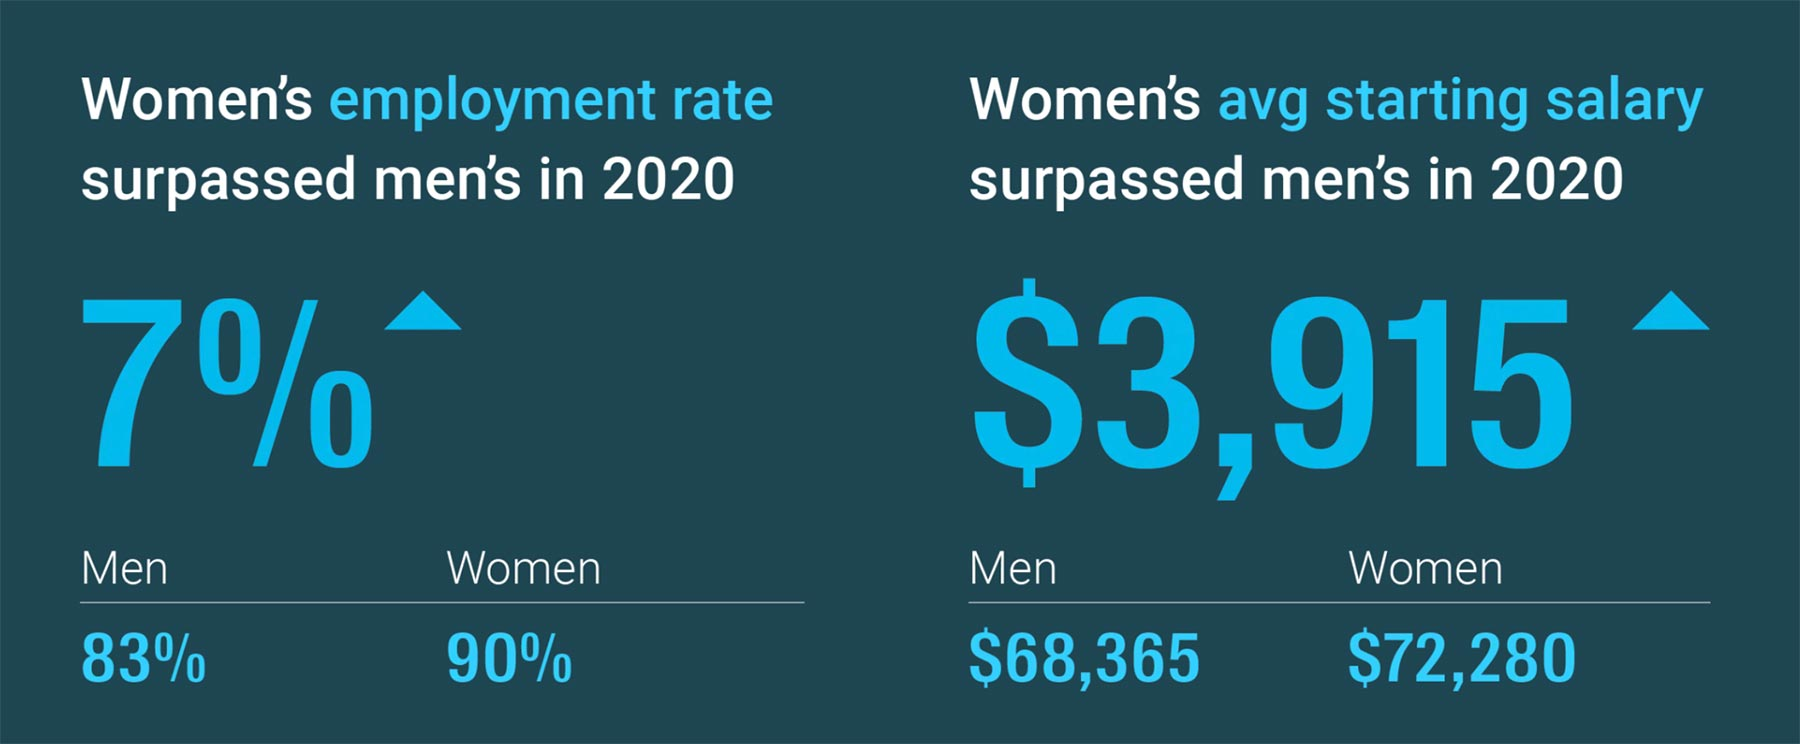 Women's employment rate surpassed men's in 2020 — 90% to 83%. Women's average starting salary surpassed men's in 2020 — $72,290 to $68,365.